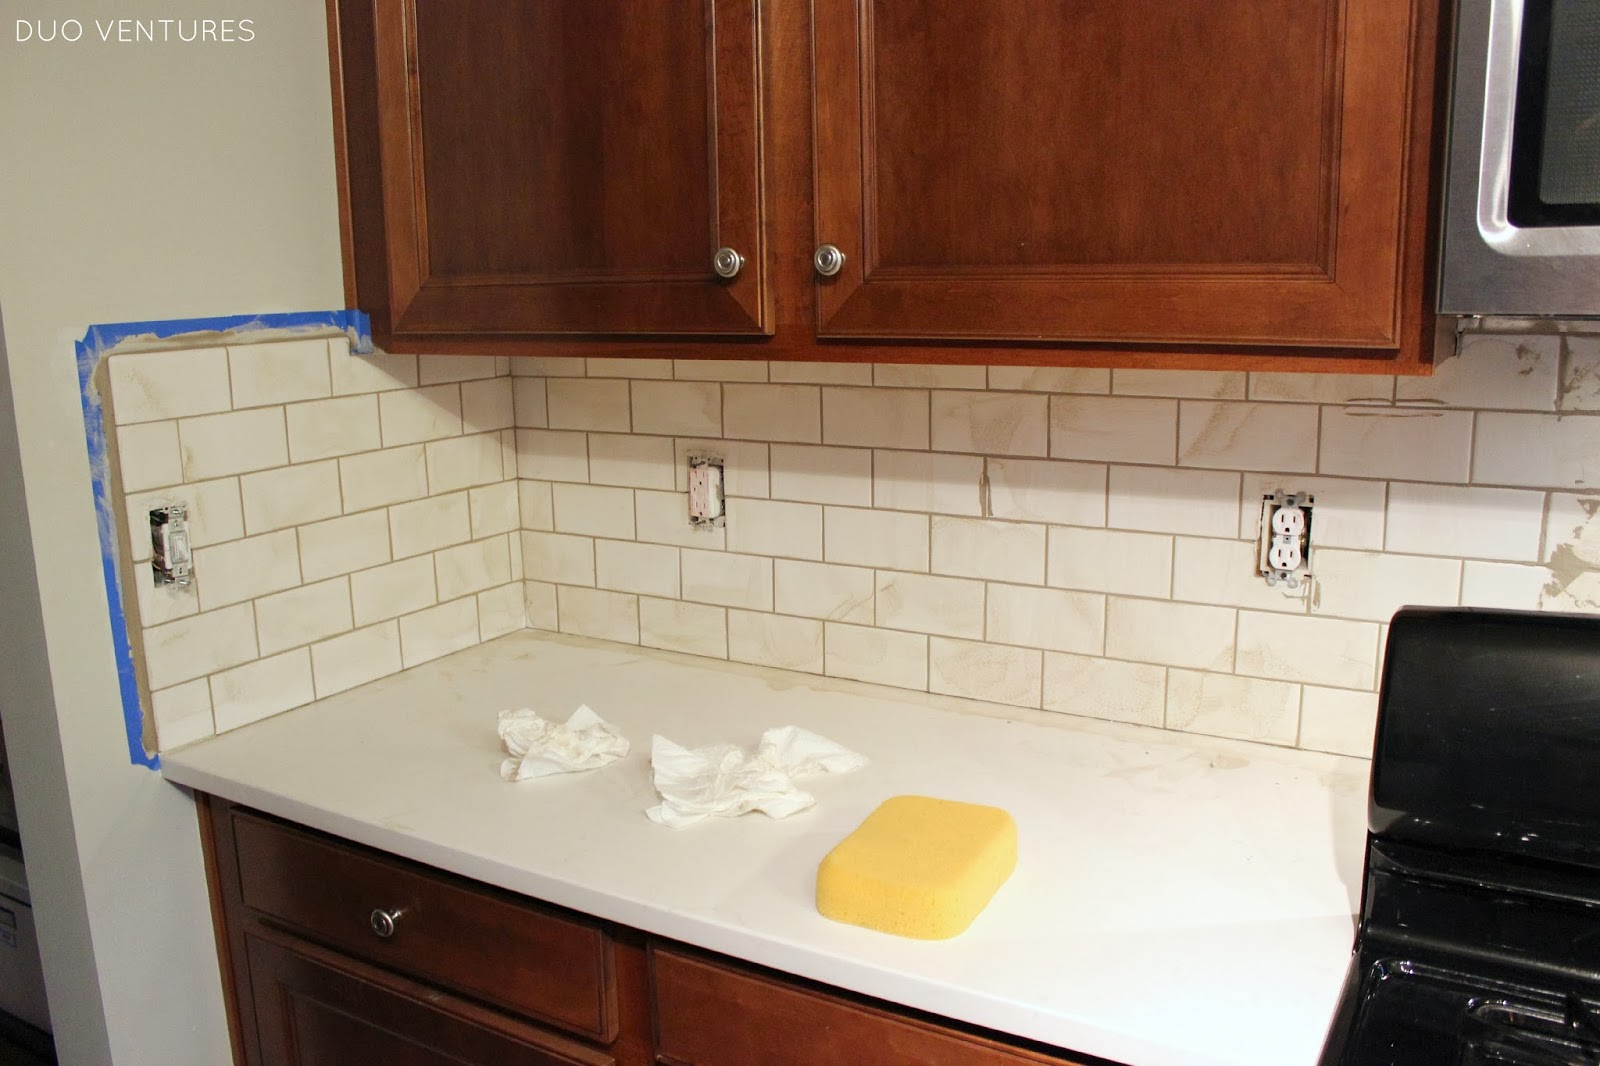 Duo Ventures: Kitchen Update: Grouting & Caulking Subway